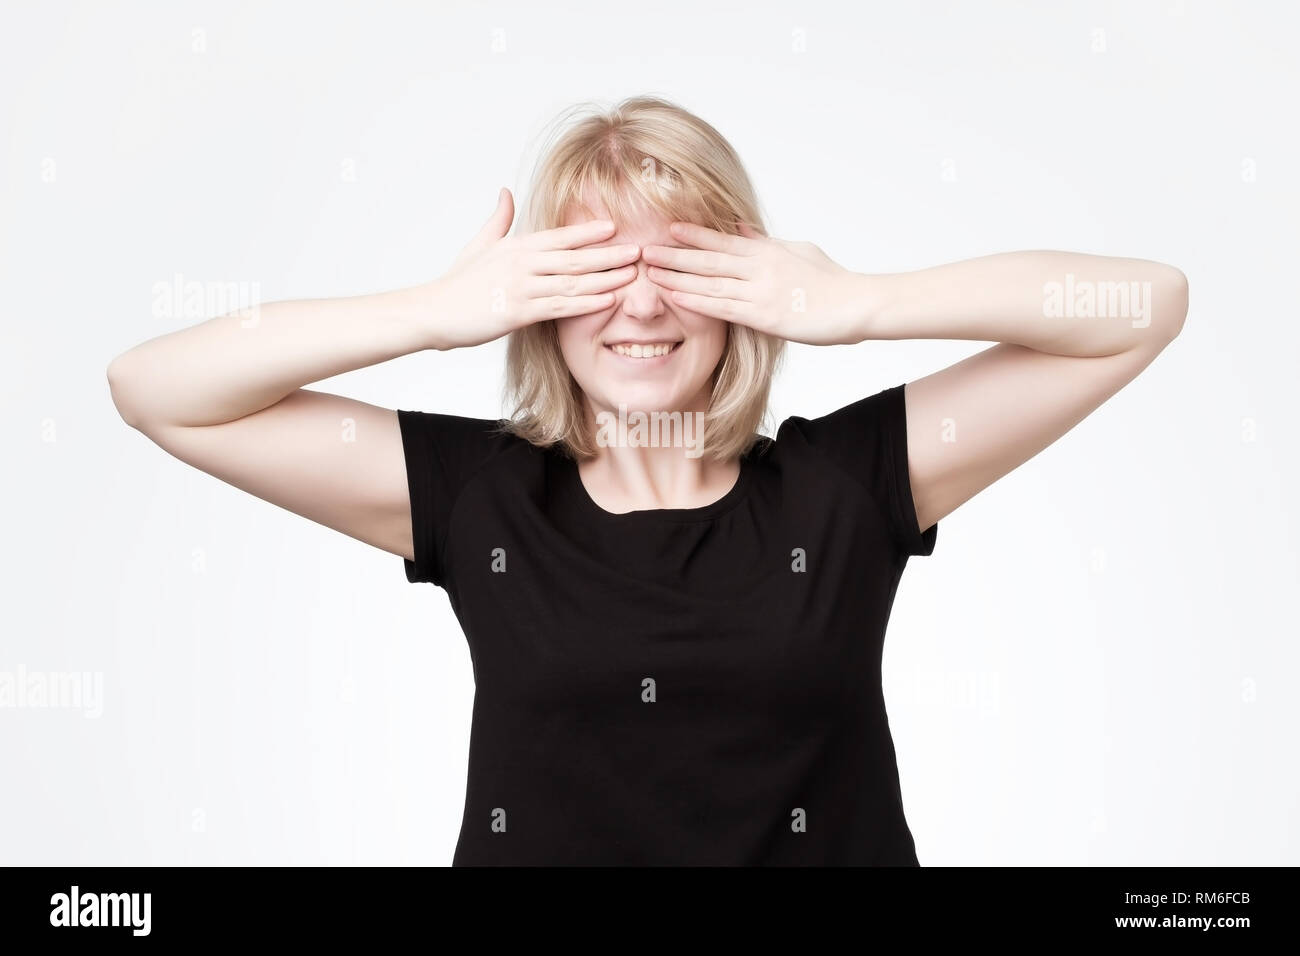 Woman covering eyes with hands and smiling broadly, being intrigued while waiting for surprise - Stock Image